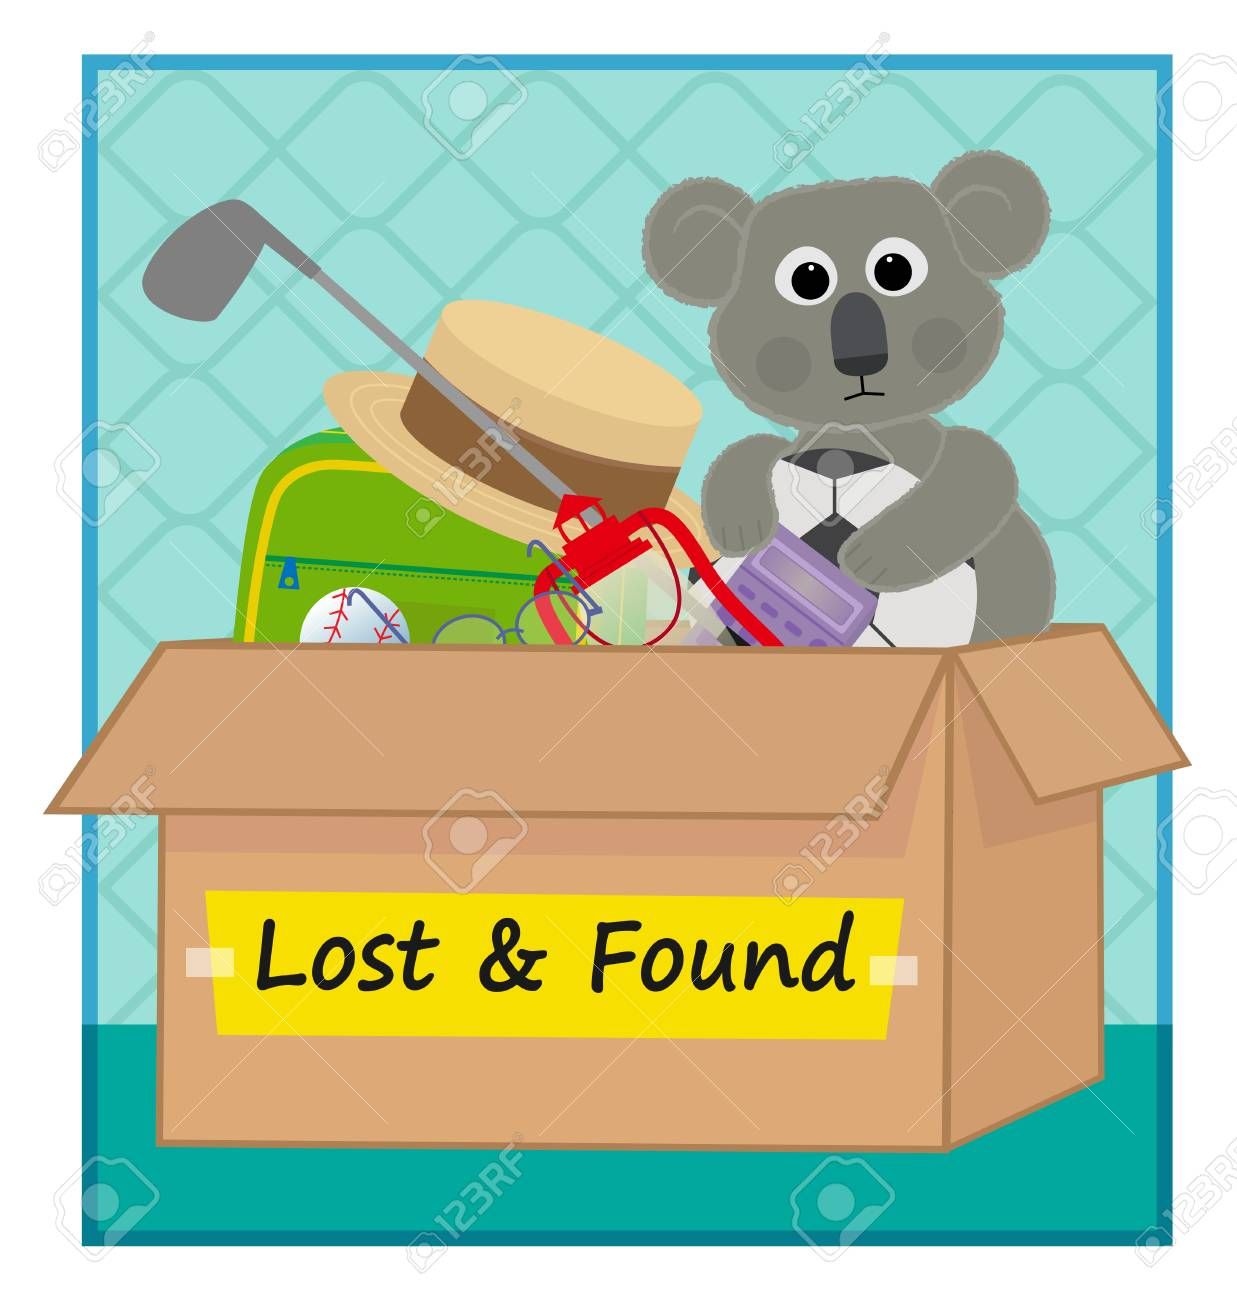 clip art of a lost and found box with lost items. Eps10.